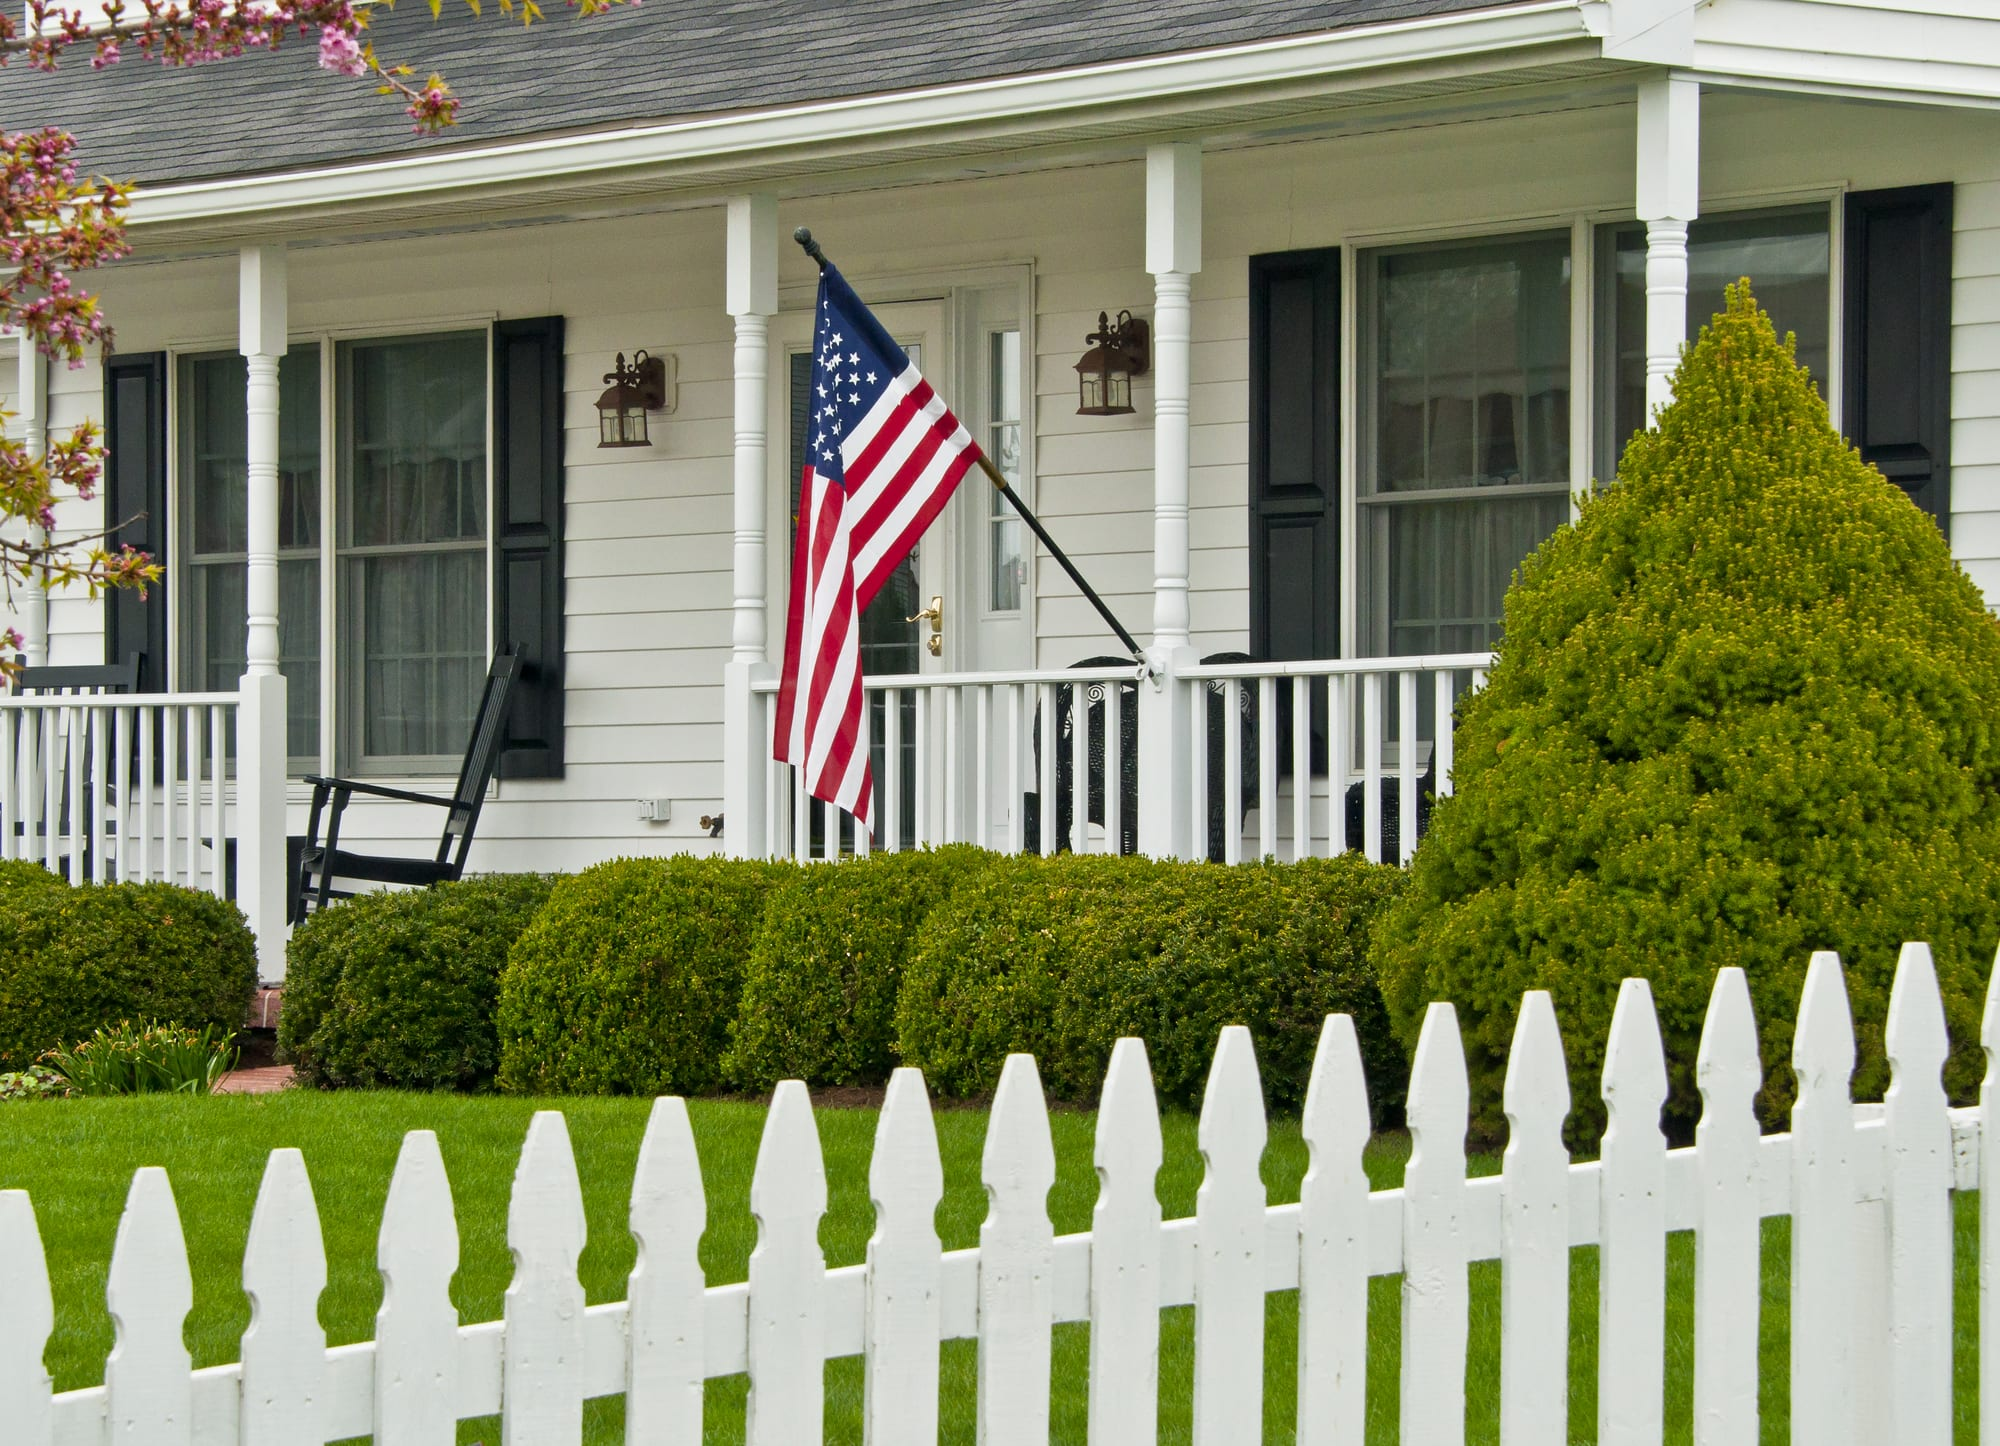 American flag hanging from classic house with white picket fence